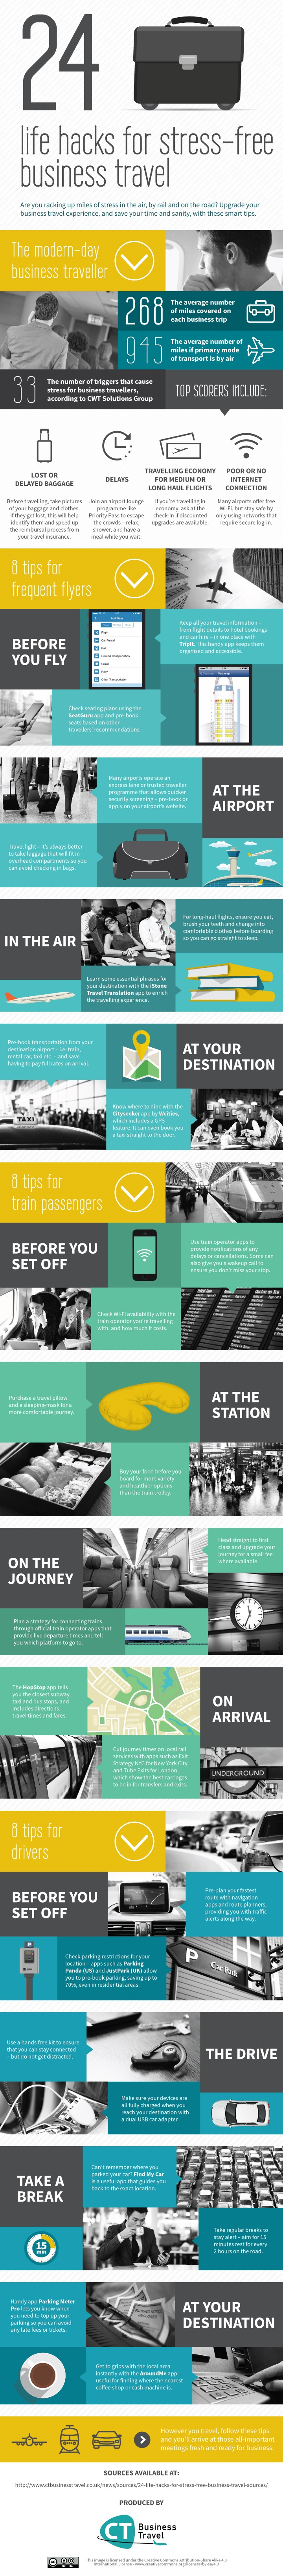 24 Tips Stress-free Business Travel Infographic